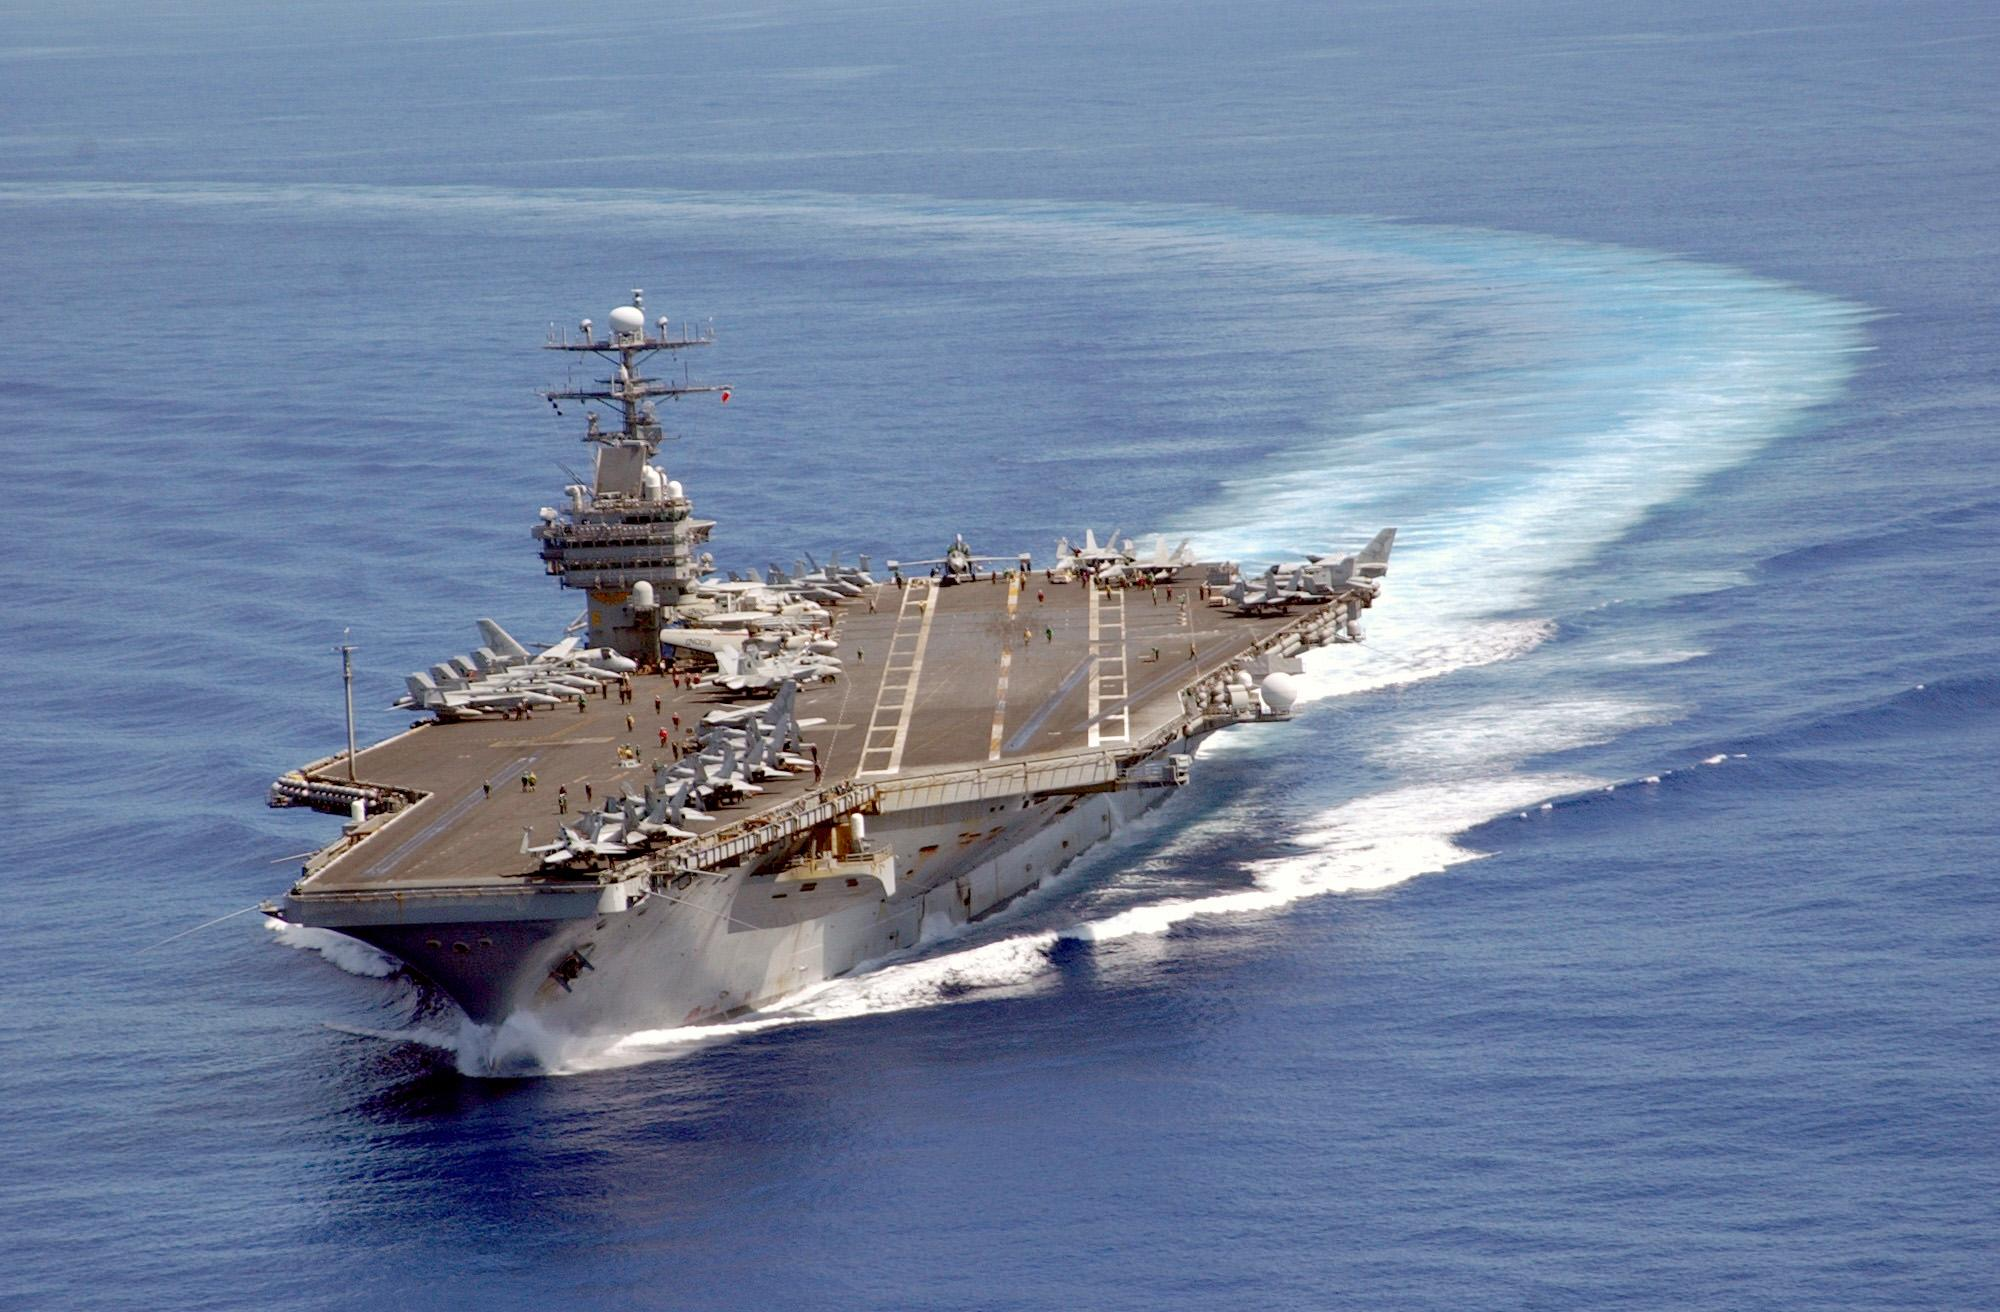 uss_carl_vinson_on_patrol_in_the_pacific